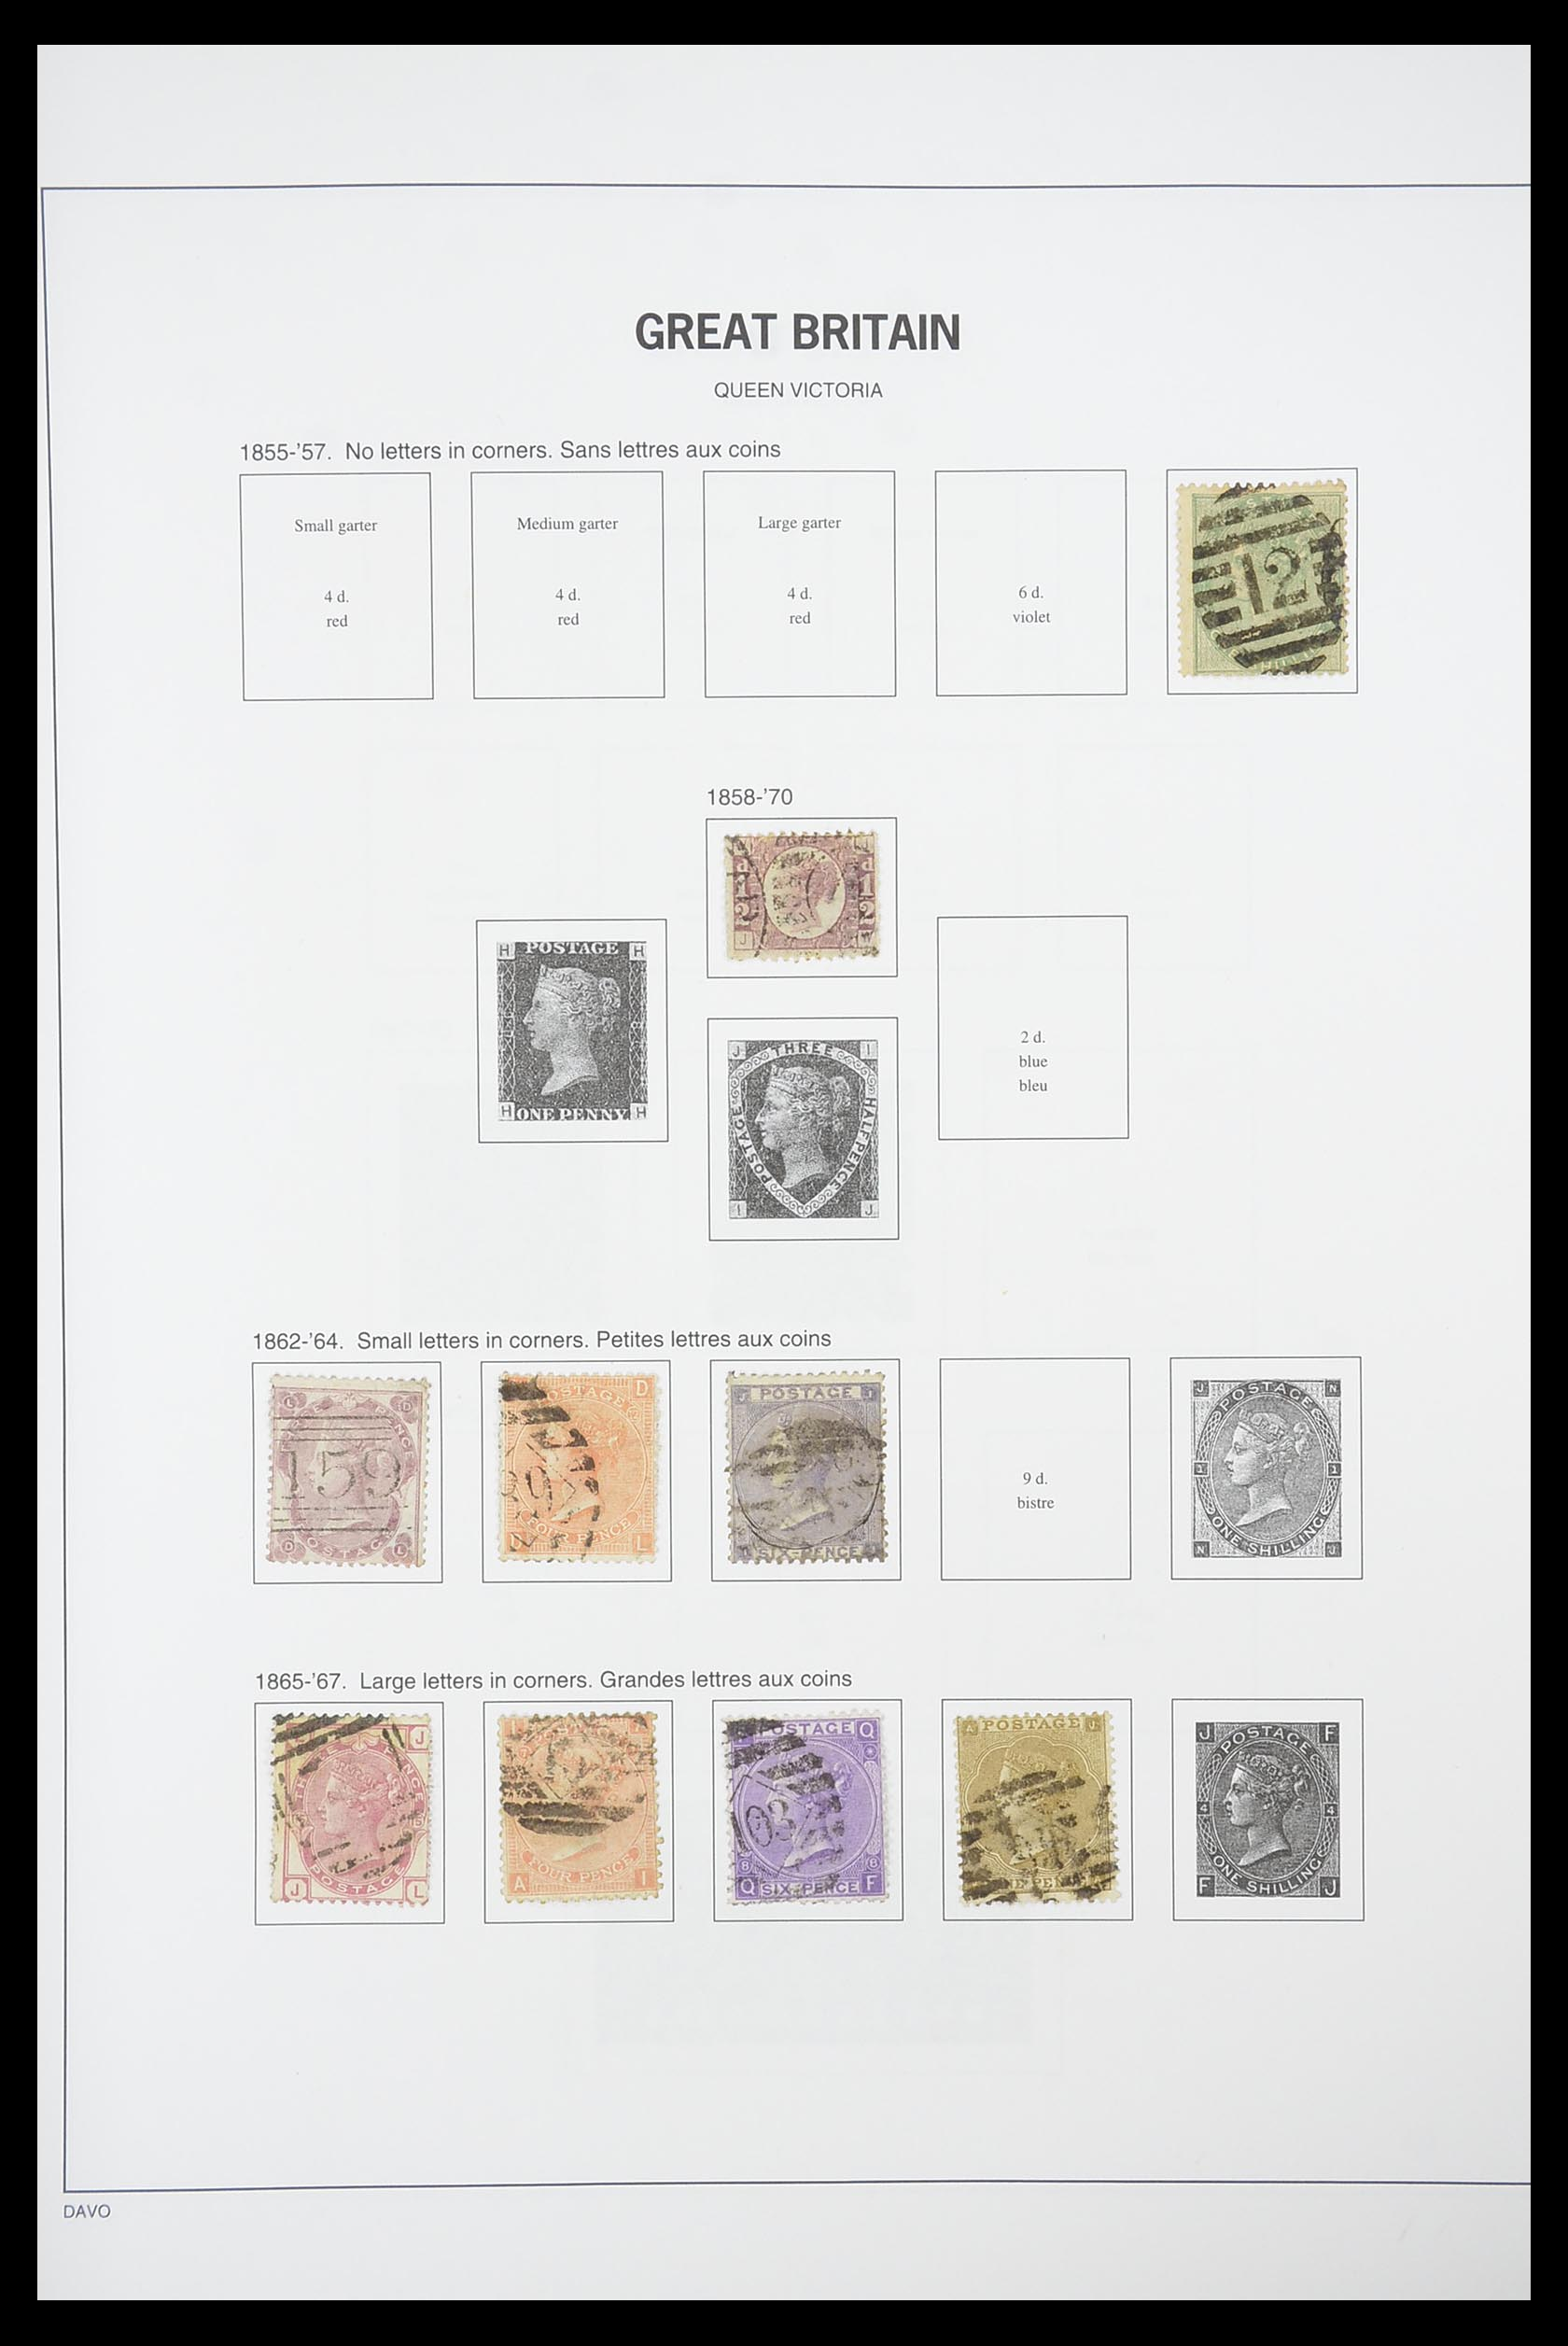 33898 002 - Stamp collection 33898 Great Britain 1840-2006.